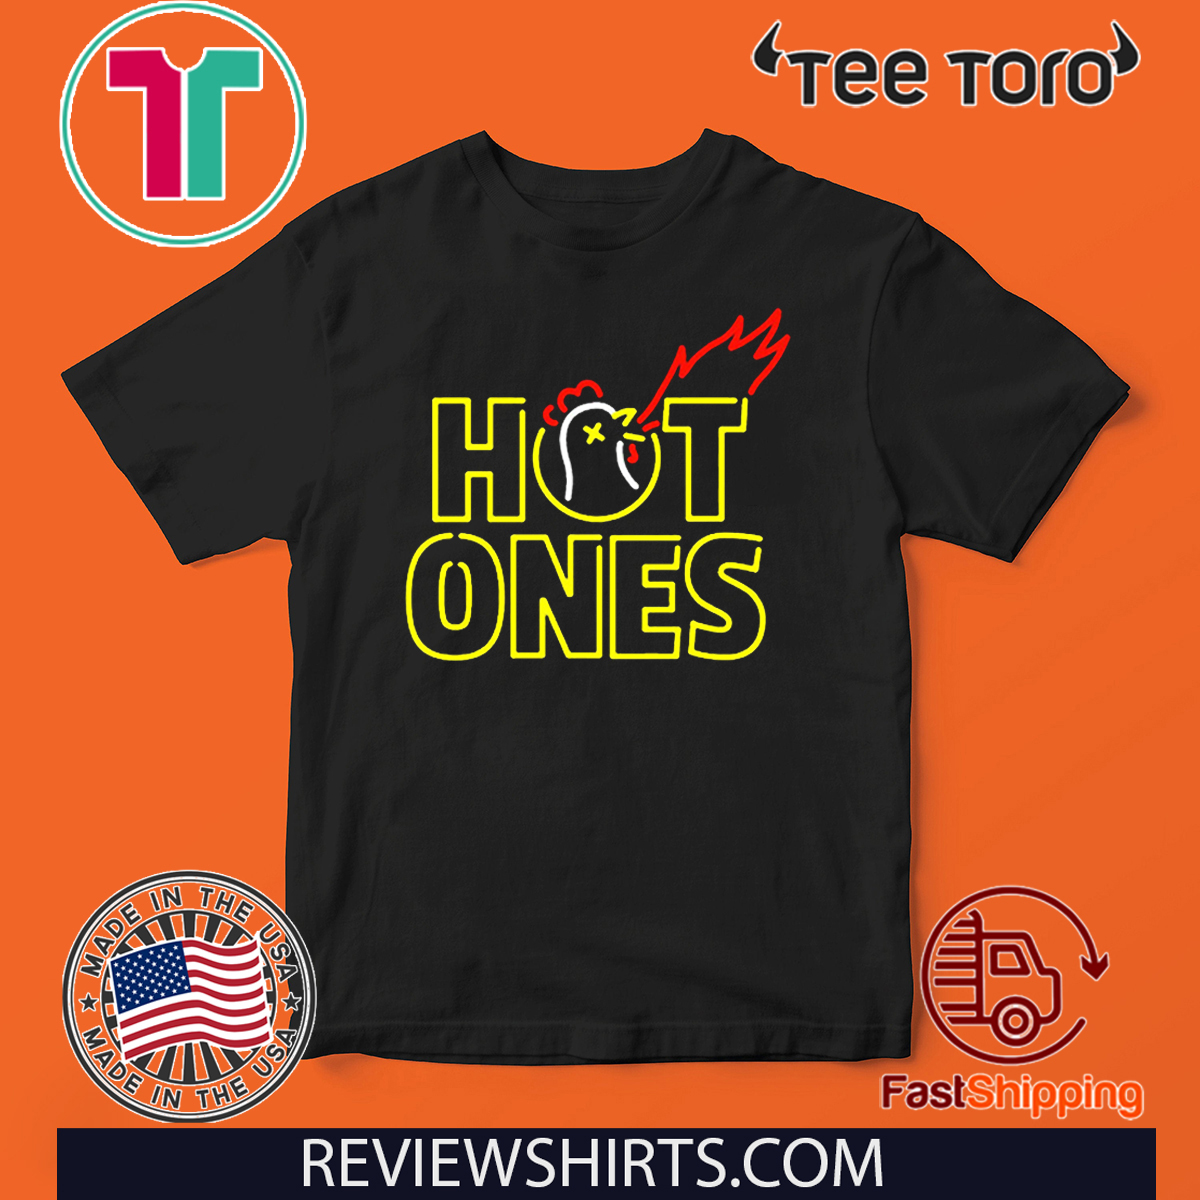 Hot Ones Shirt T-Shirt